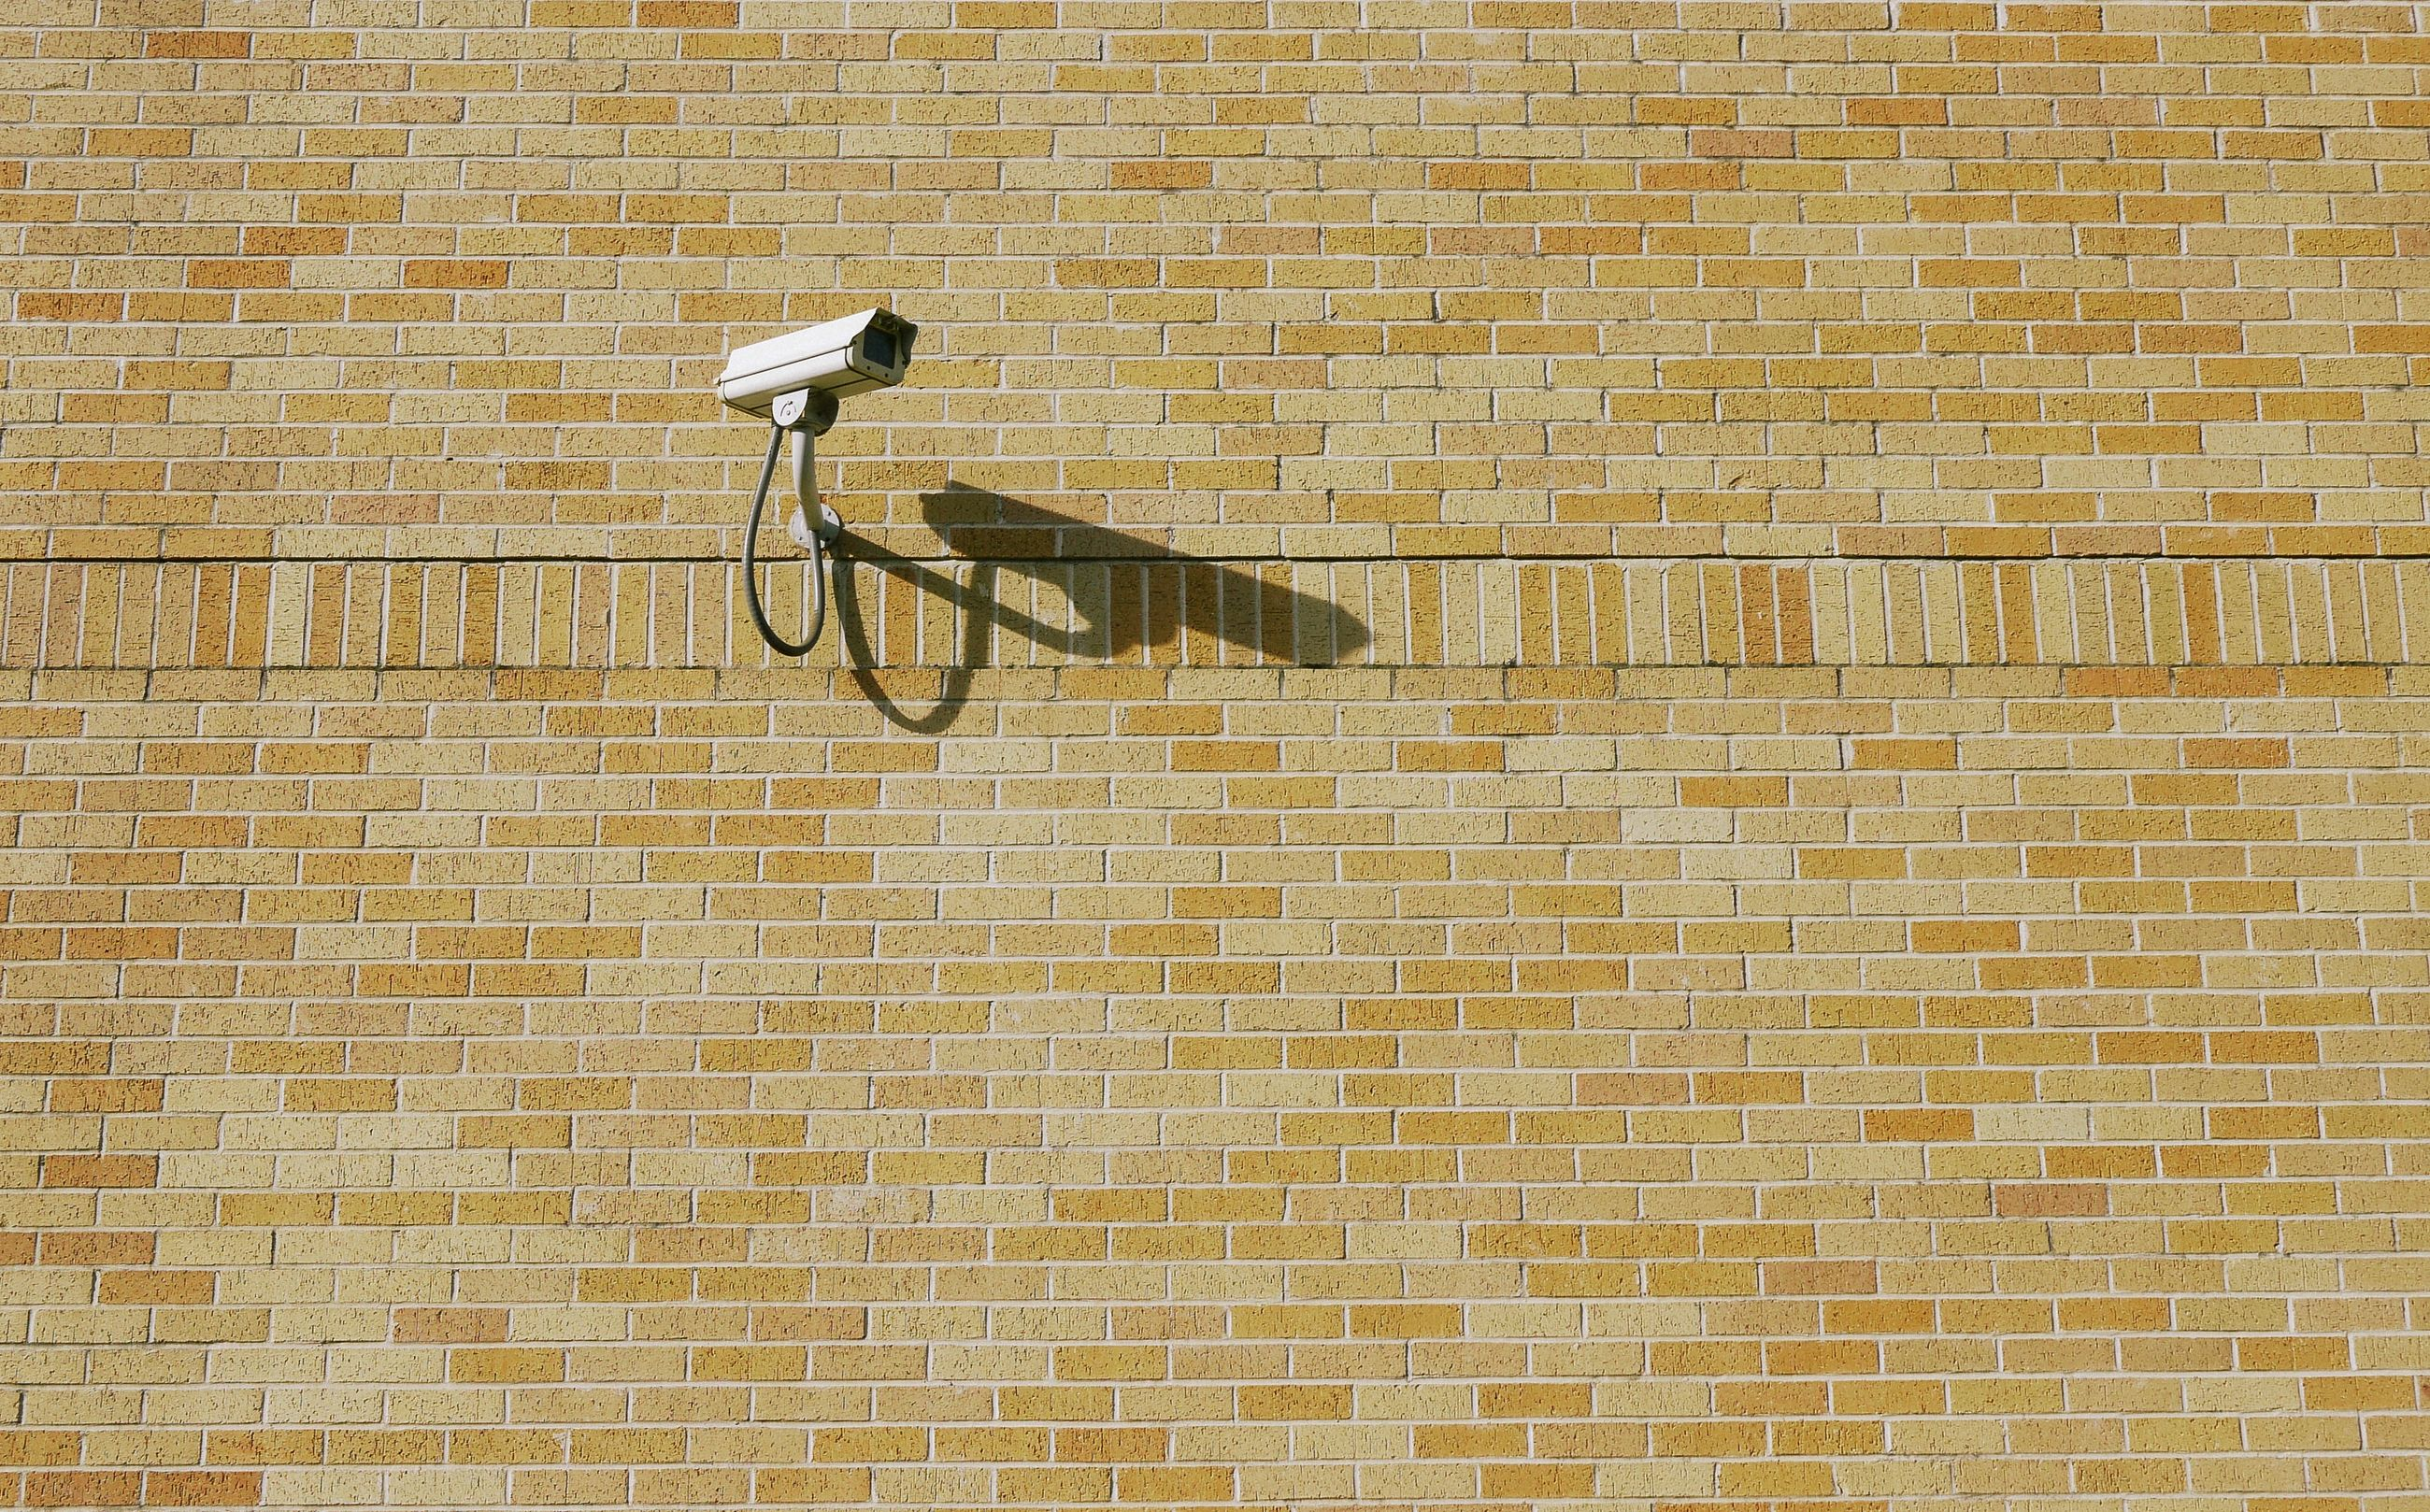 wall - building feature, tile, architecture, built structure, wall, brick, flooring, pattern, brick wall, no people, day, shadow, security camera, surveillance, outdoors, sunlight, building exterior, electricity, tiled floor, nature